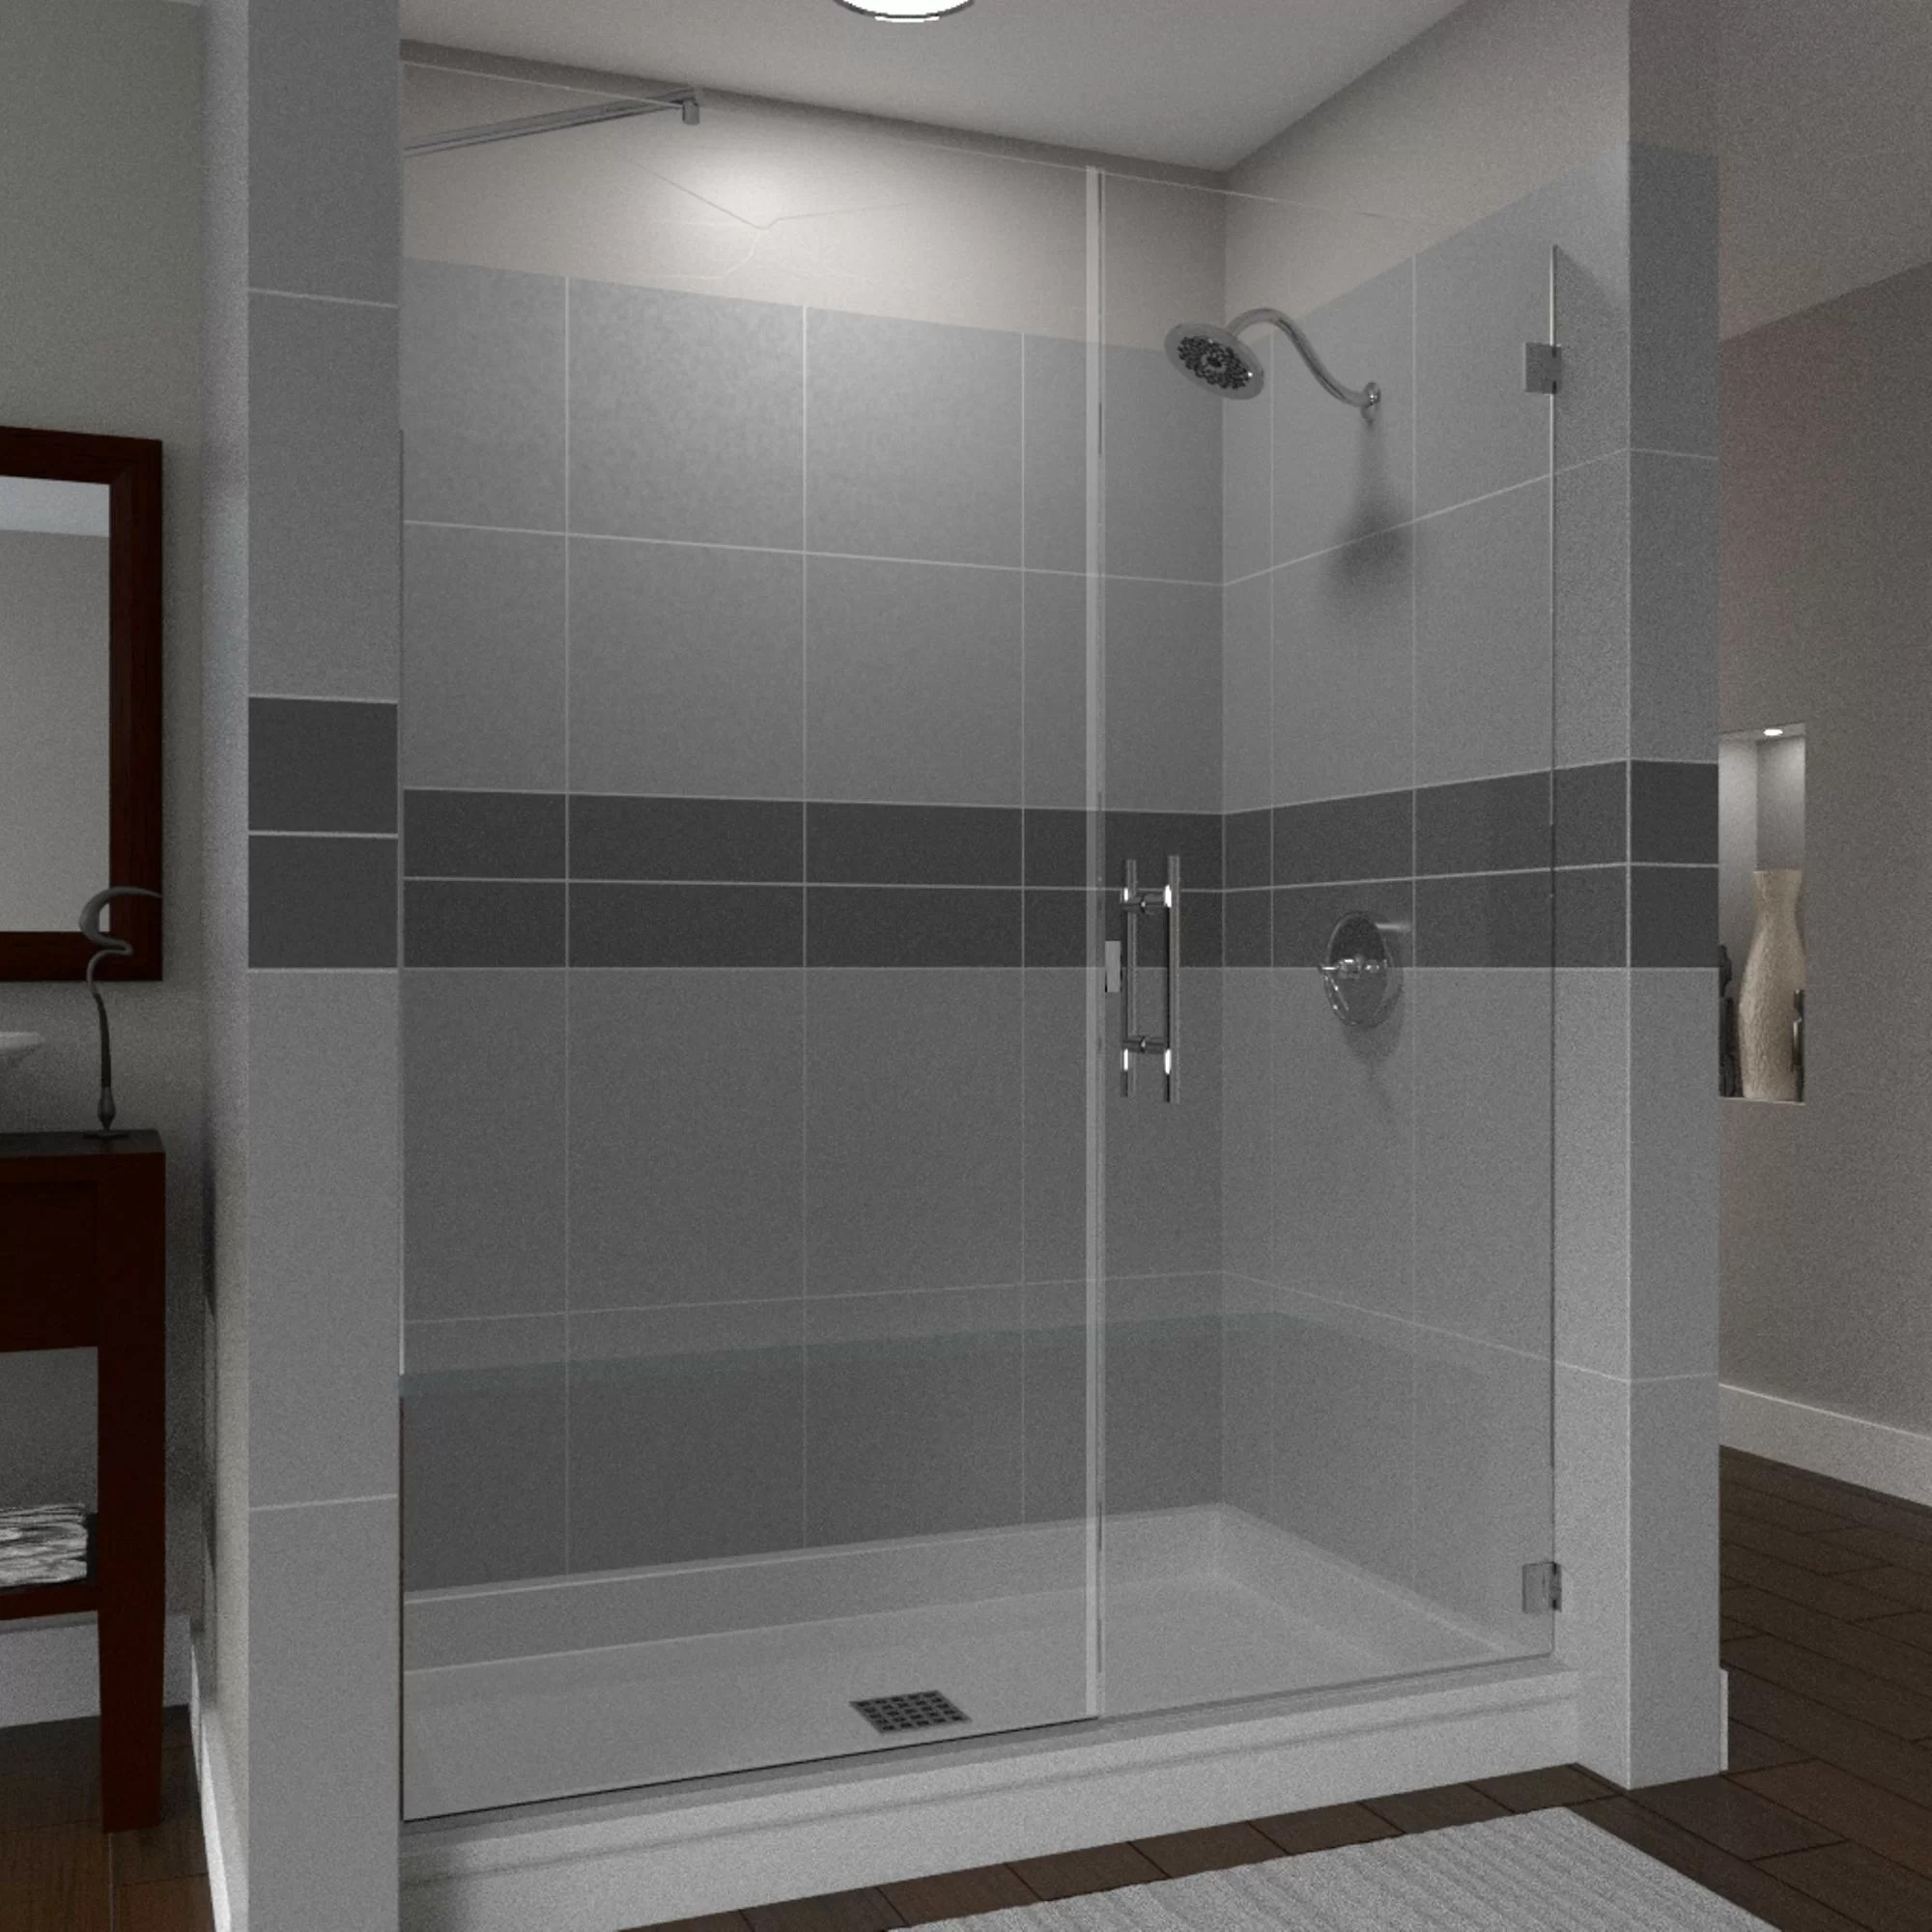 Scottsdale 31 X 72 Hinged Frameless Shower Door With Invisible Shield By Clean X